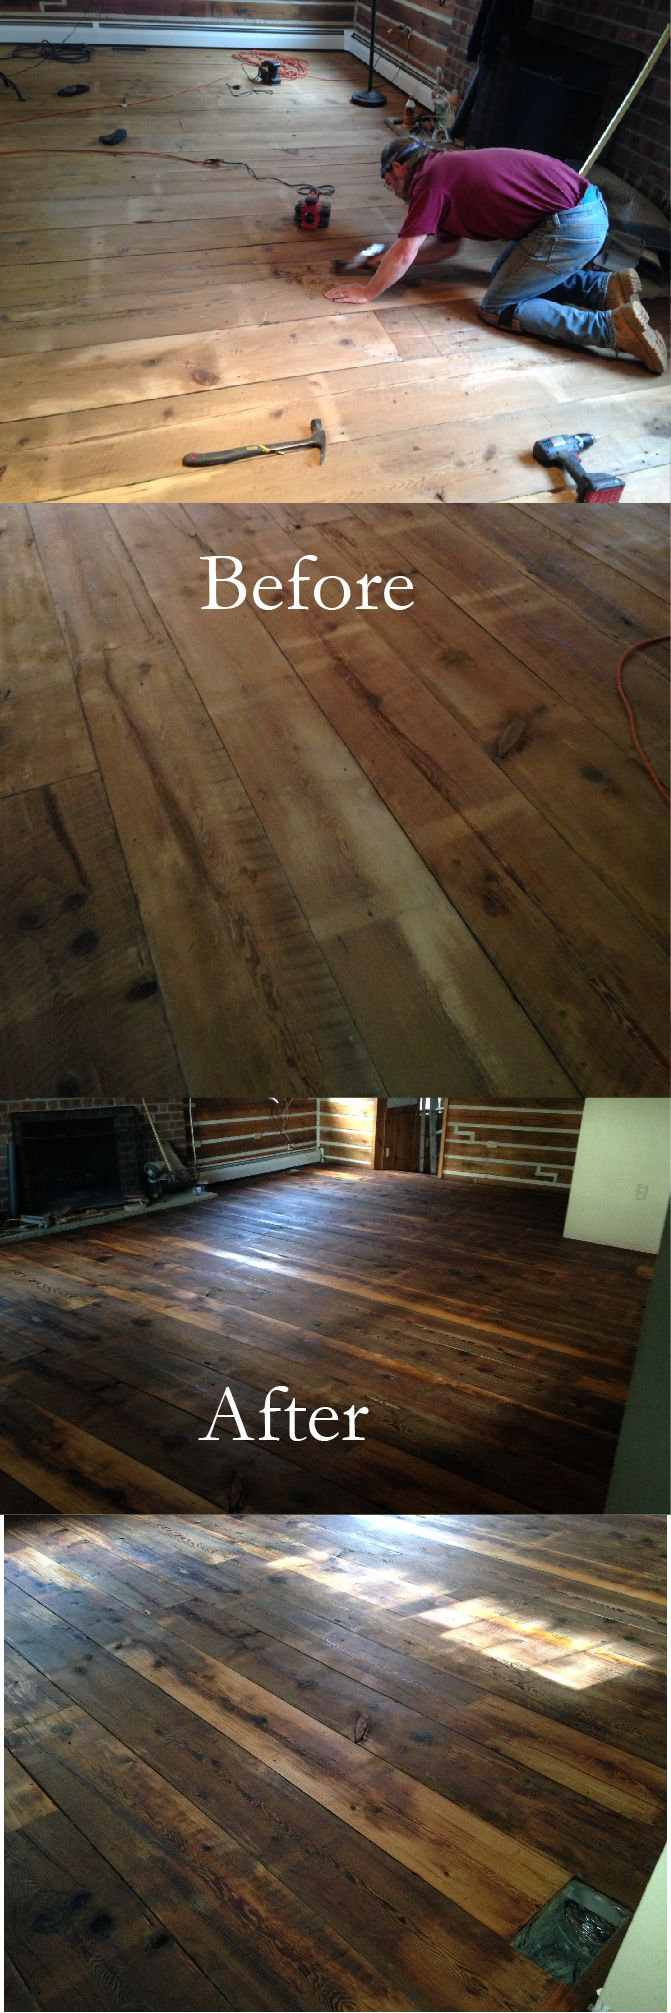 This flooring was from an 1880's barn my friend Greg and I took down in Allentown PA. We put it back up on my property and repaired rotten timbers and replaced roof rafters with new 2x4 trusses. The second floor of the barn was this flooring that we put in our Log home and finished with your Tung oil mixed with mineral spirits. The Tung oil was the perfect finish for this antique pumpkin pine flooring, my wife and I are very pleased with the results!! Jonny P.